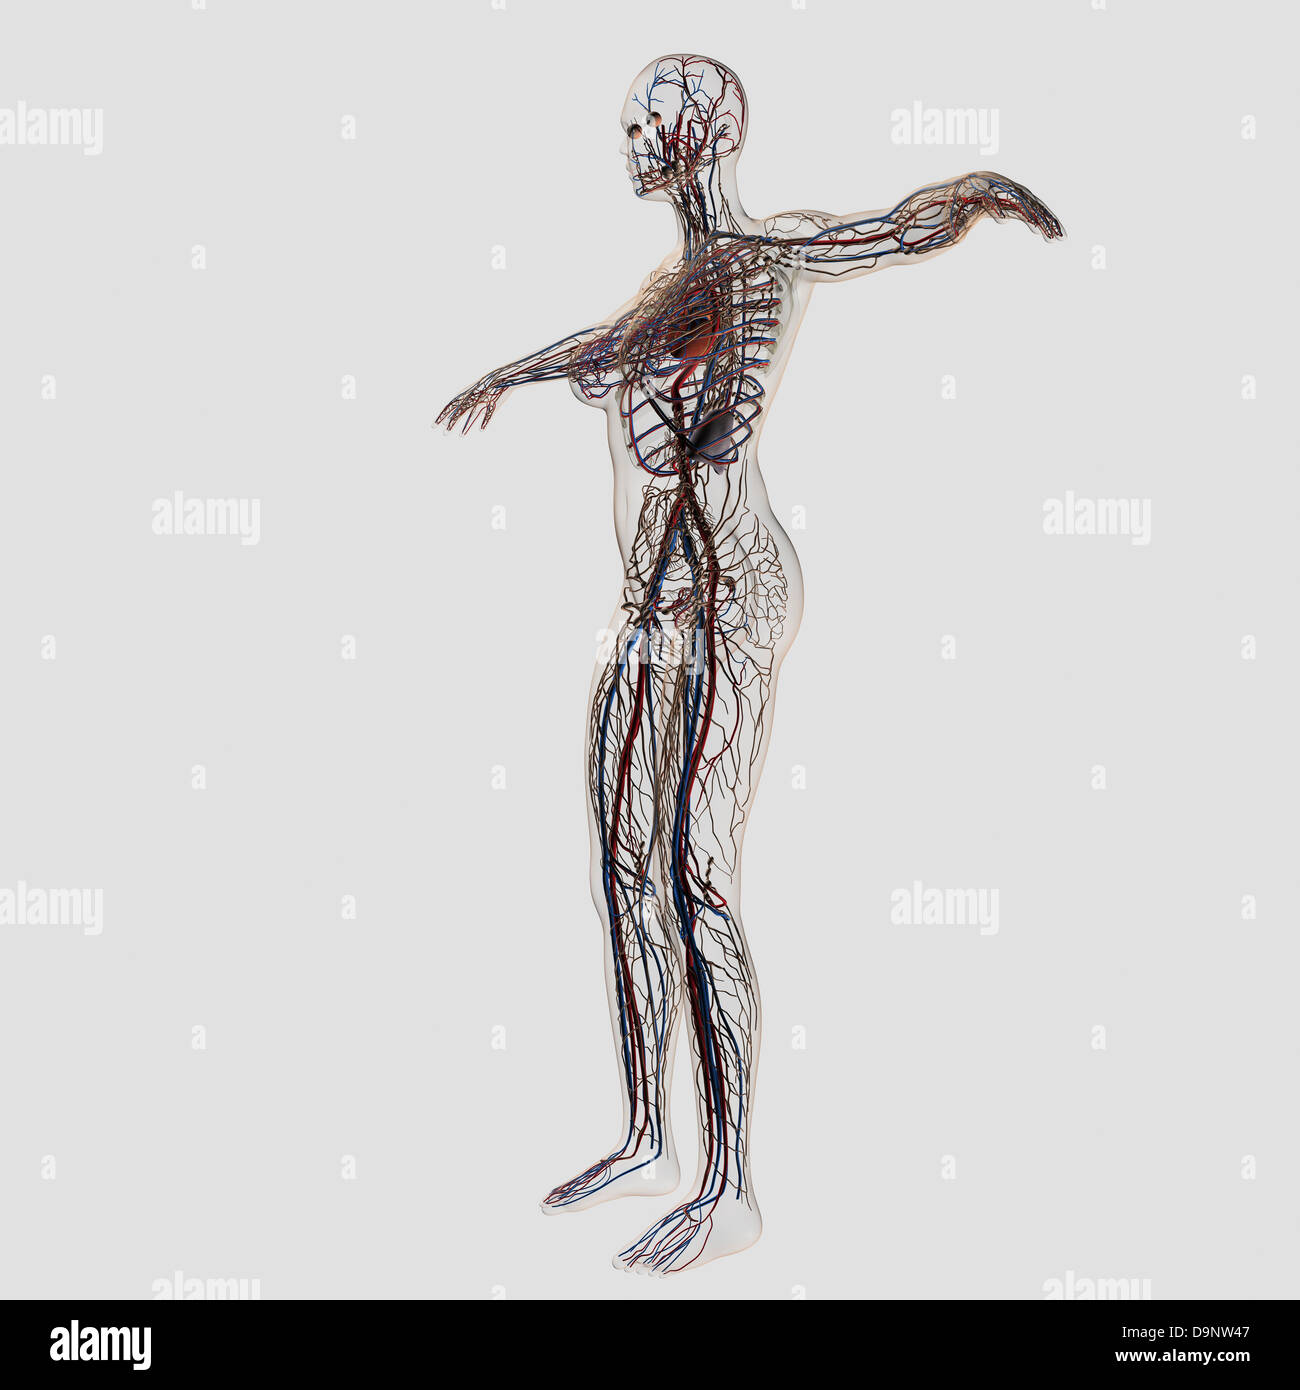 Female Lymphatic System Stock Photos Female Lymphatic System Stock